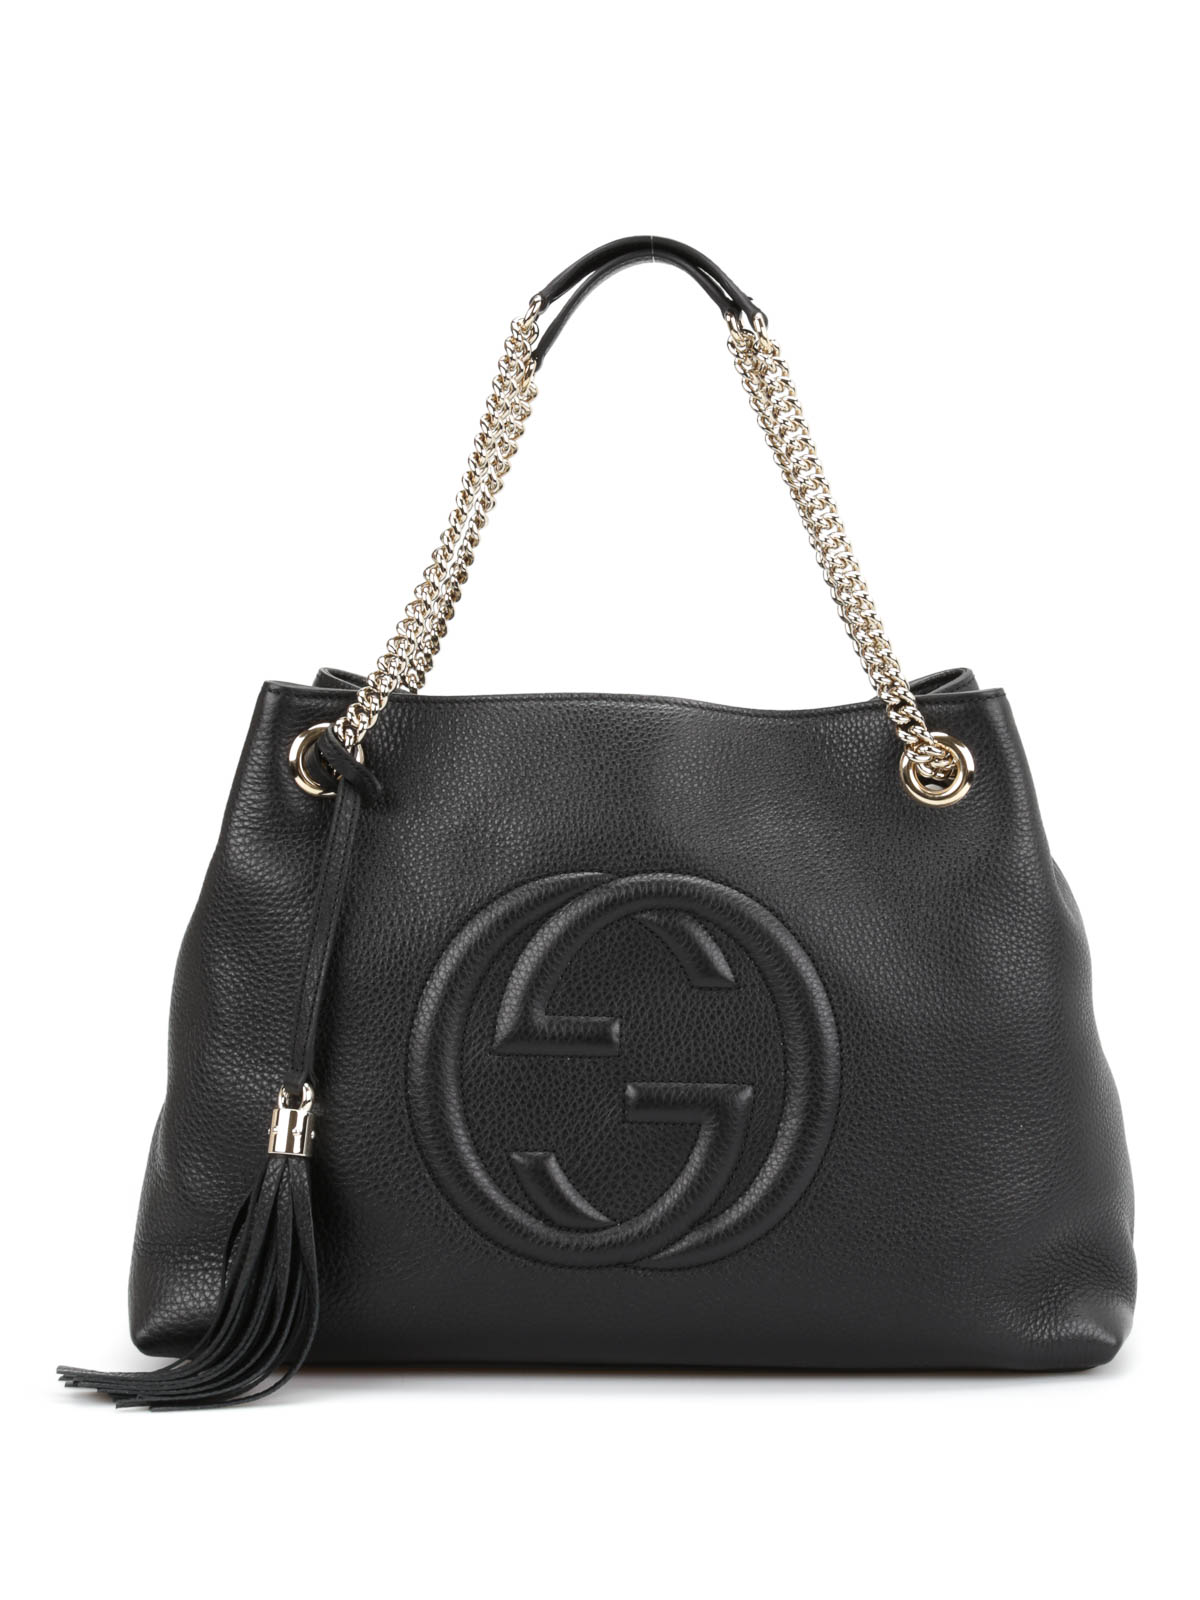 f0524a1777c3 Gucci Soho Leather Shoulder Bag Size | Stanford Center for ...